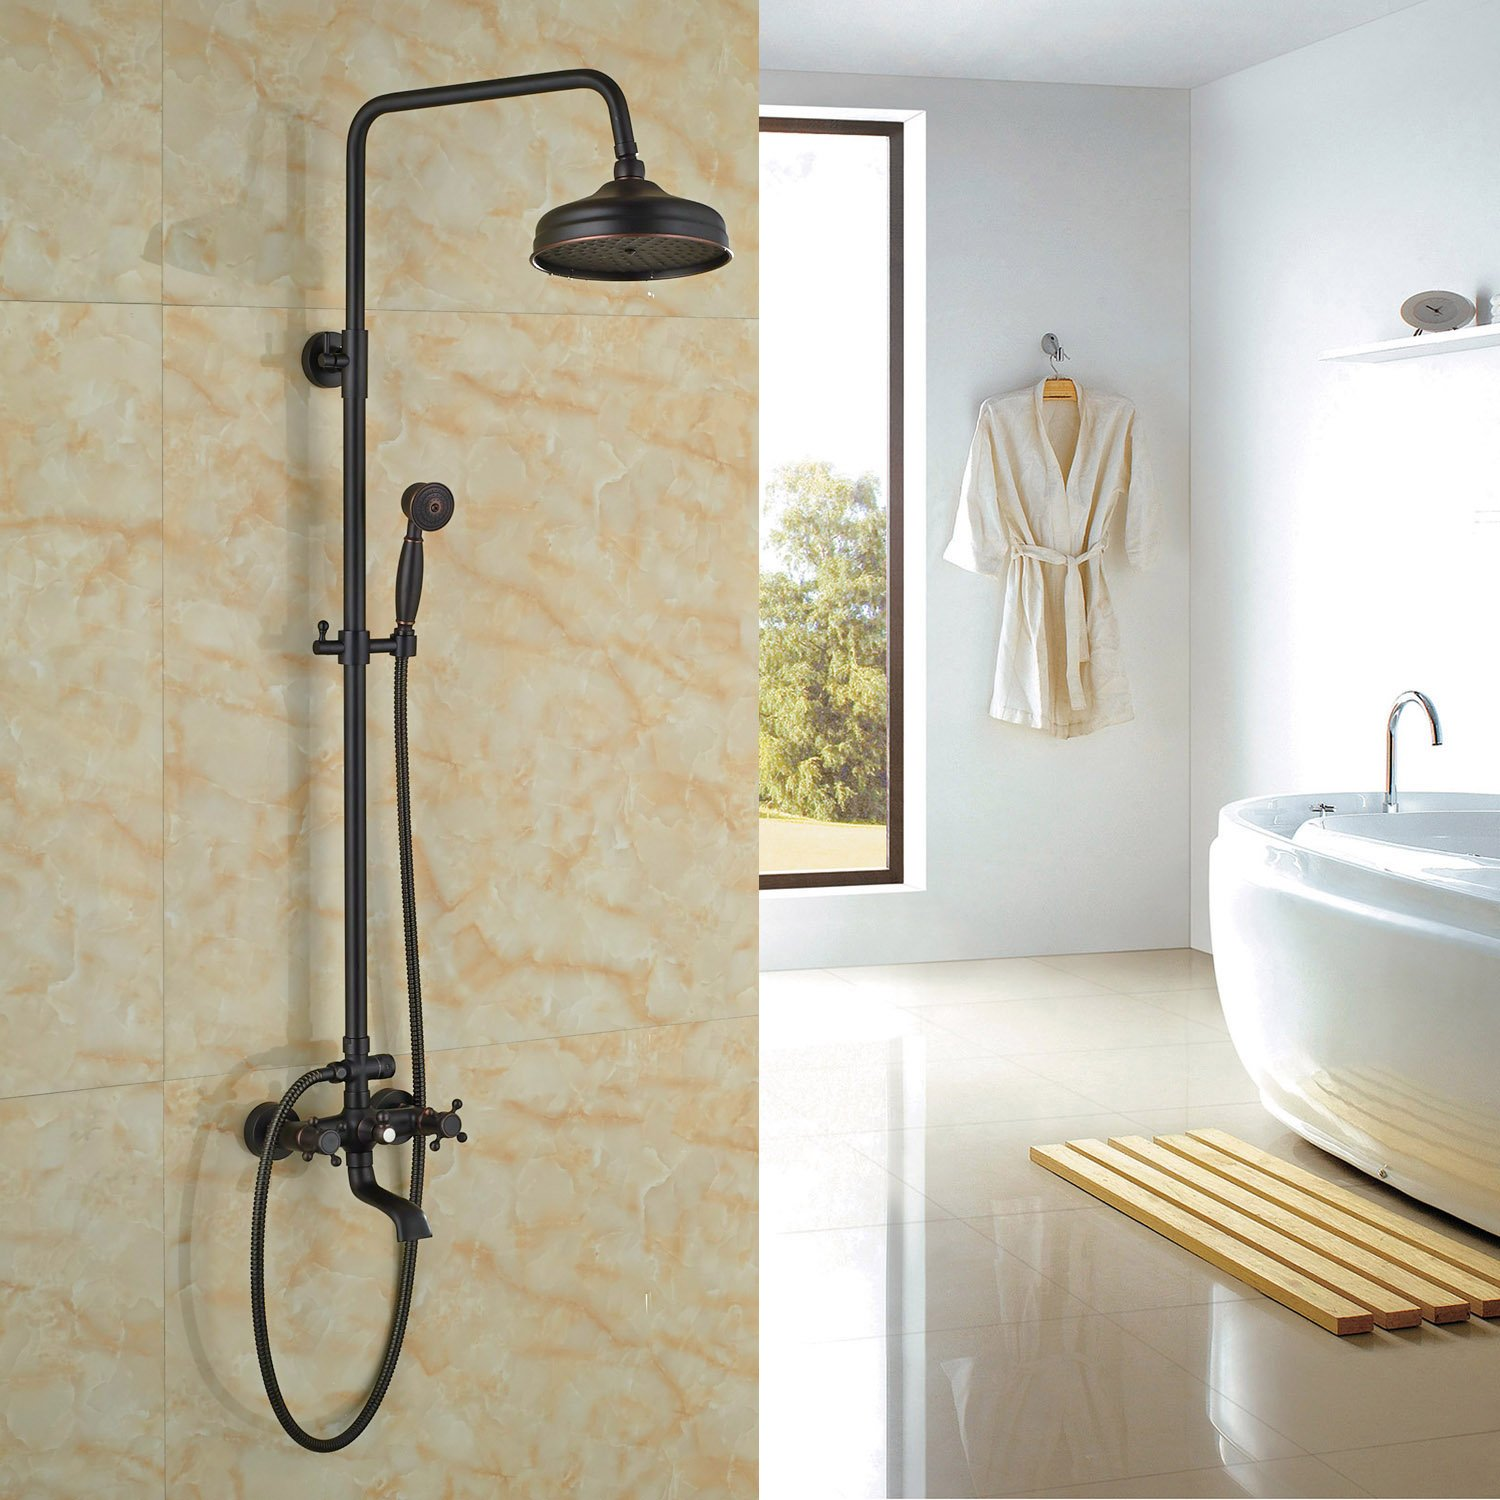 Rozin Luxury Oil Rubbed Bronze Bath Shower Faucet Set 8'' Rain Shower Head + Hand Shower Spray